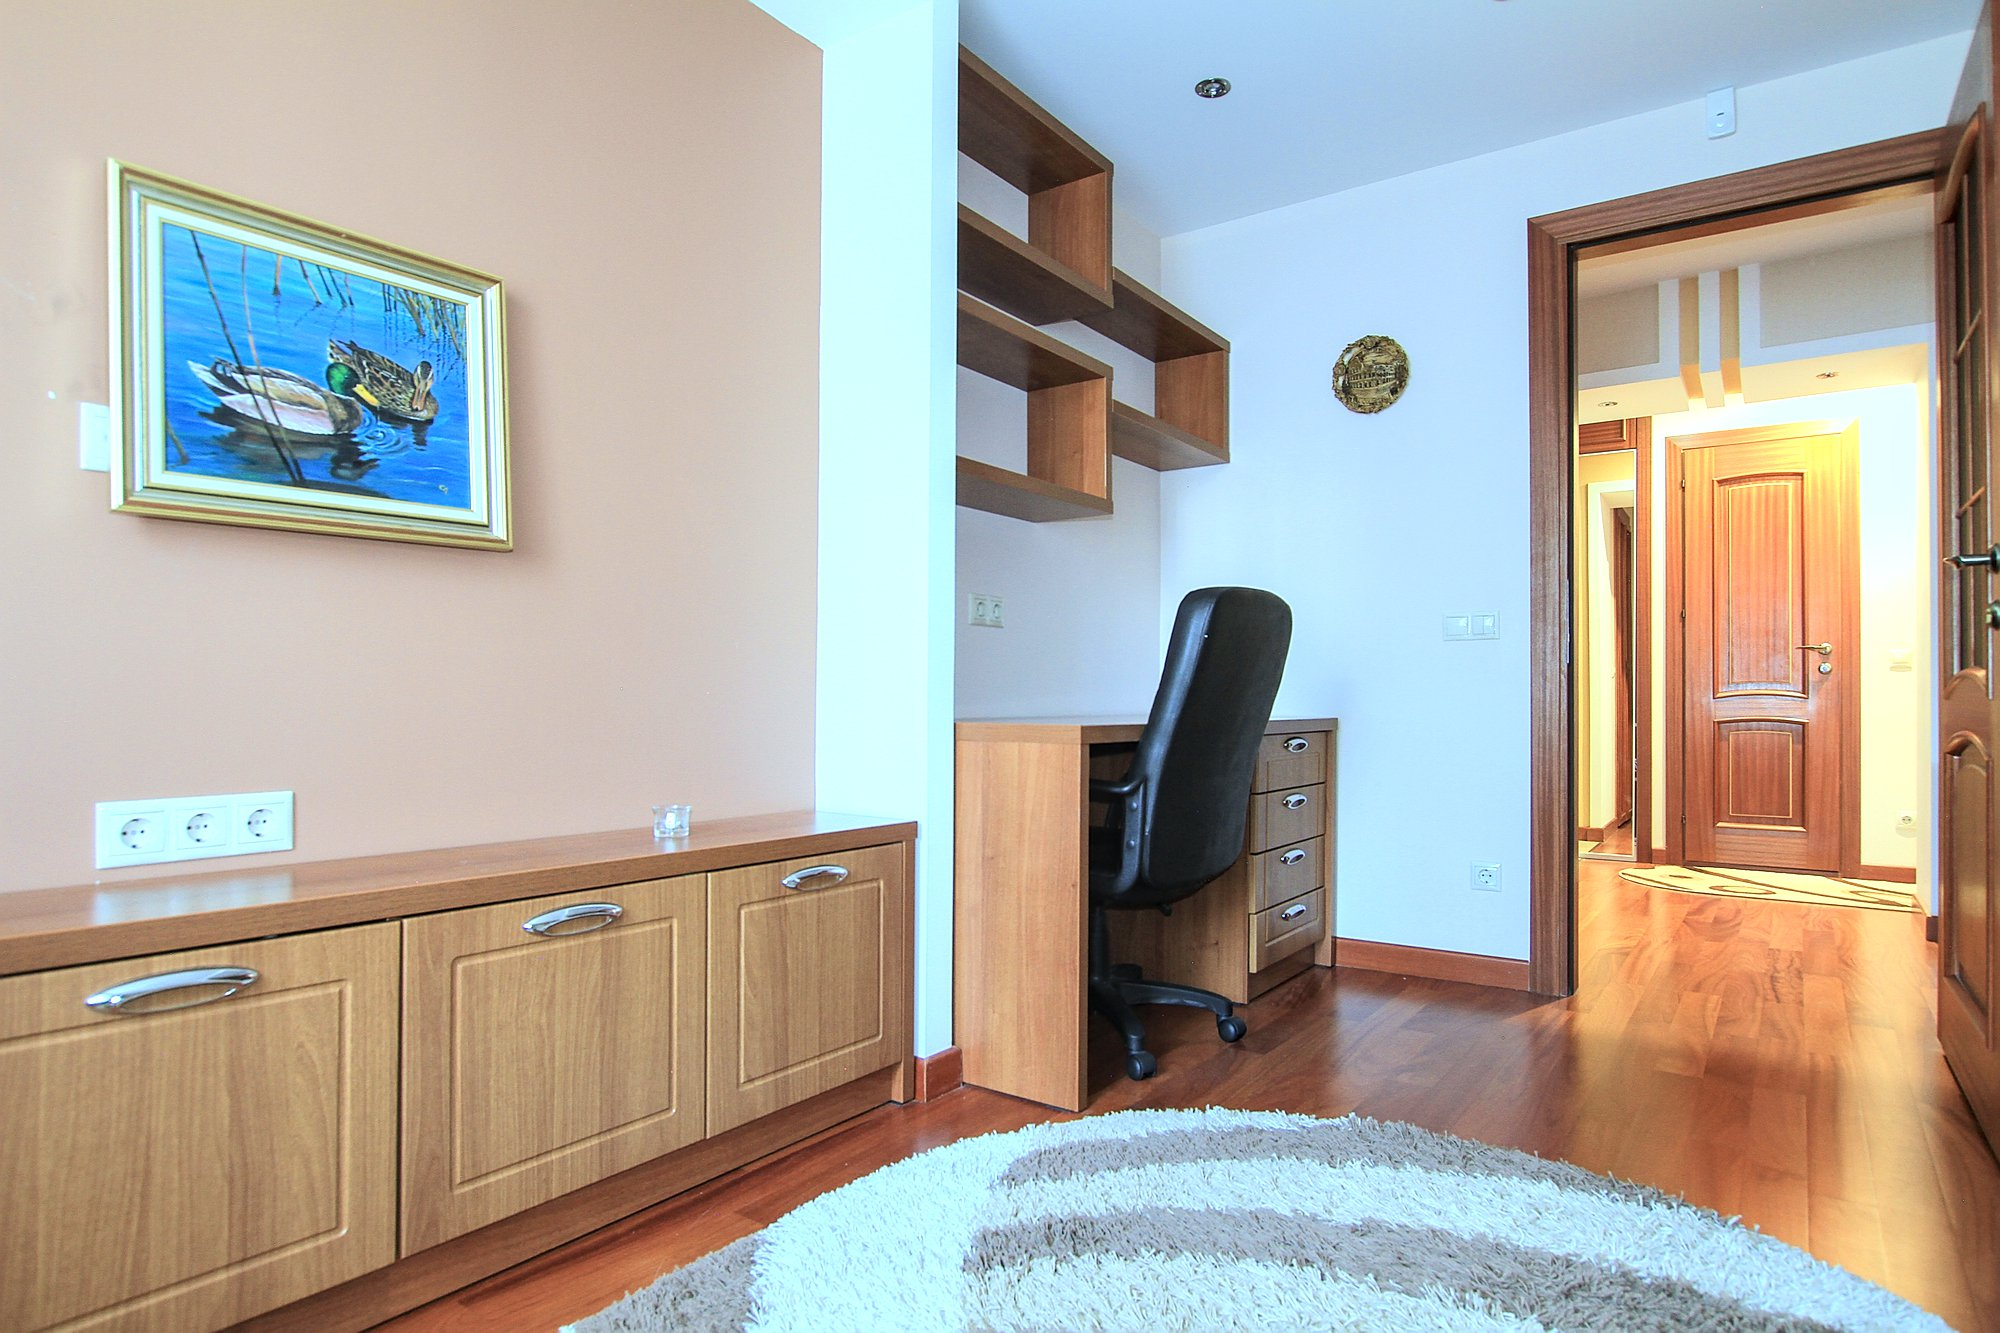 A-40-3-room-apartment-for-rent-in-Chisinau-Botanica_11.jpg